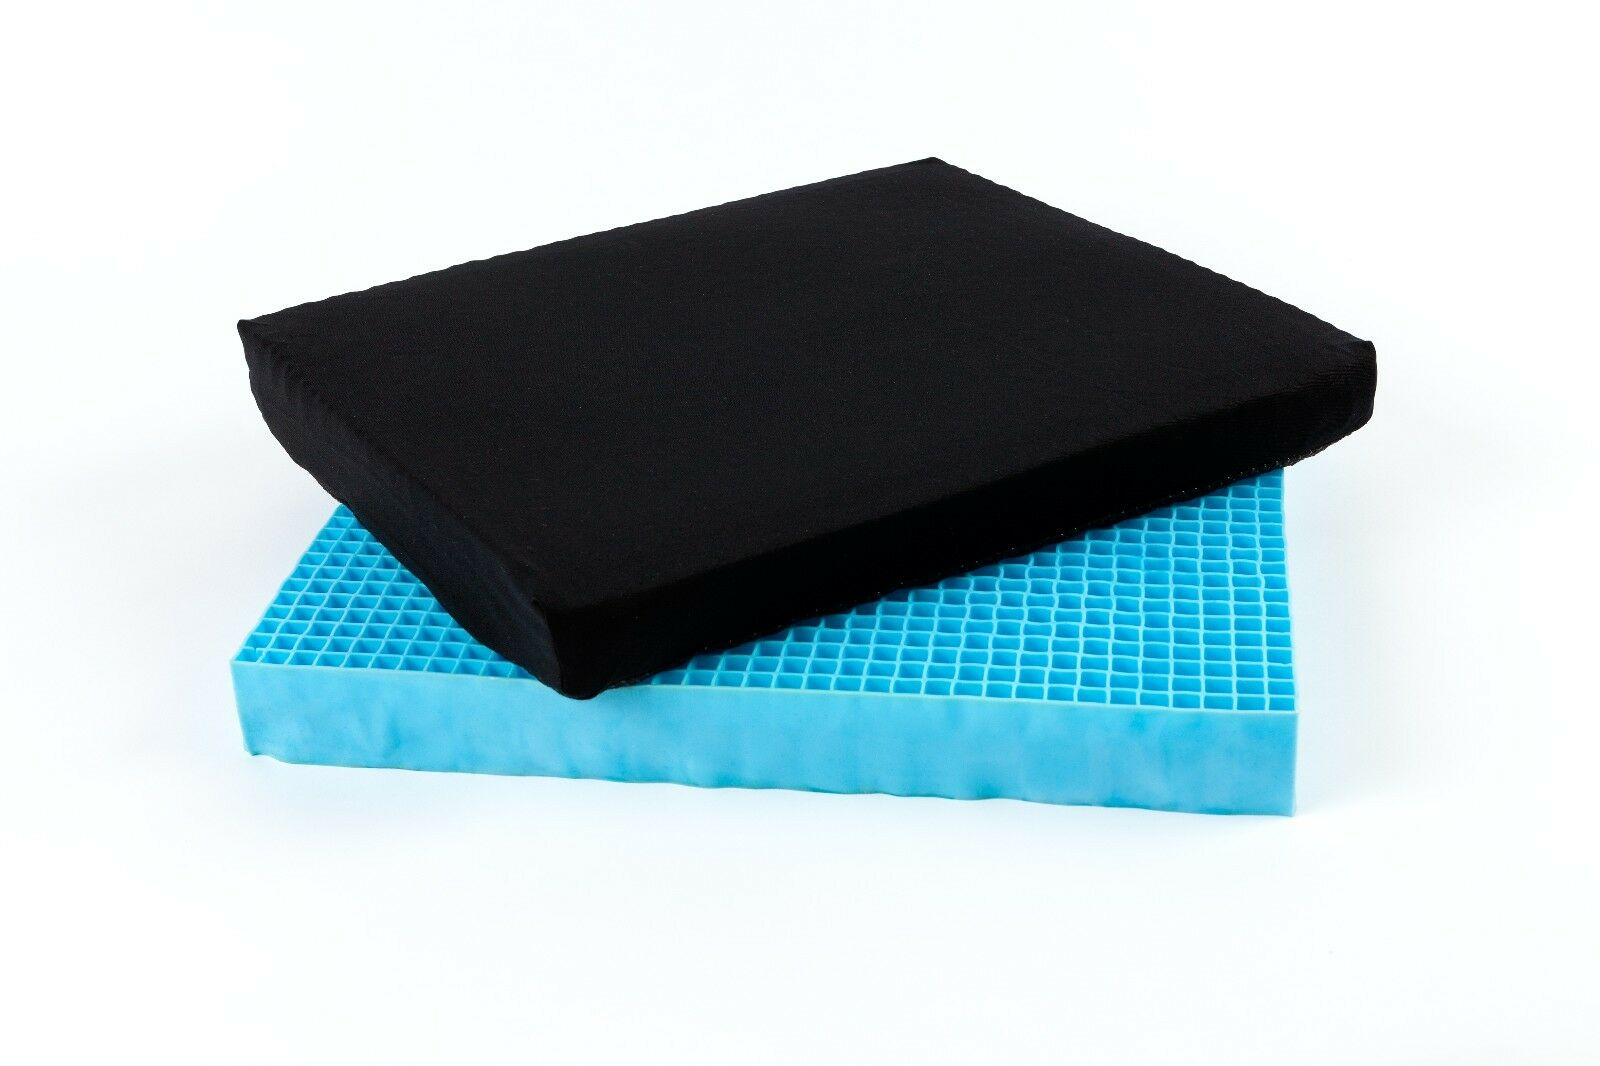 Gel Pad For Chair Miracle Cushion Duogel Seat Pad Seat Cushion Auto